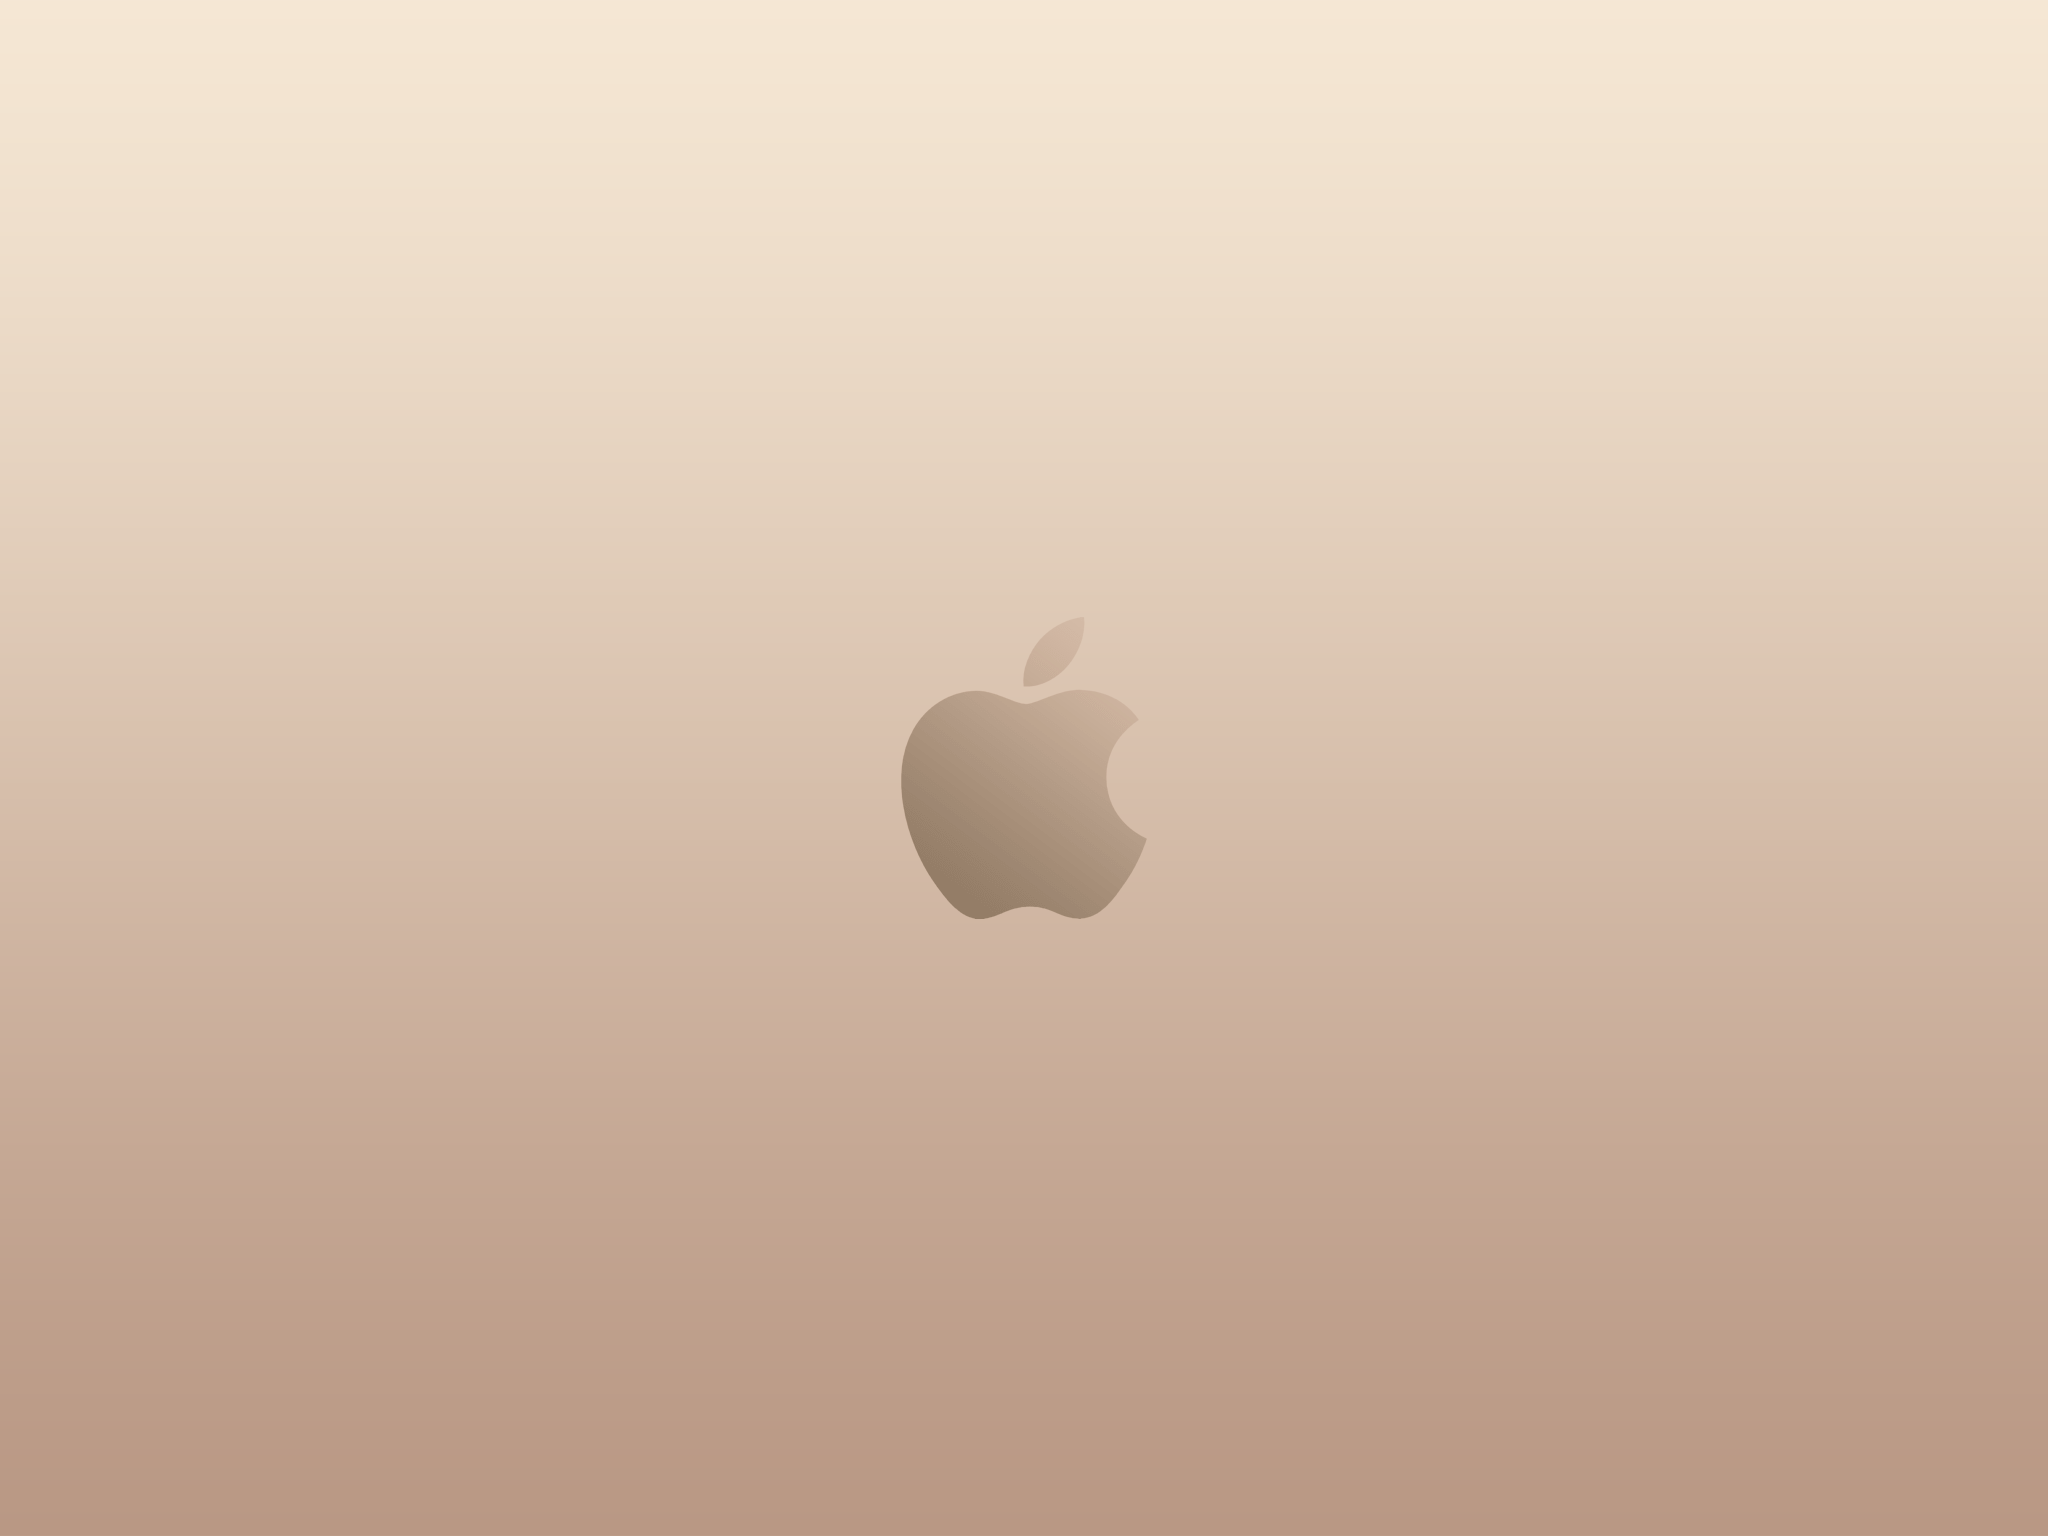 30 HD Gold And Copper Wallpapers For The All New IPhone 8 Plus